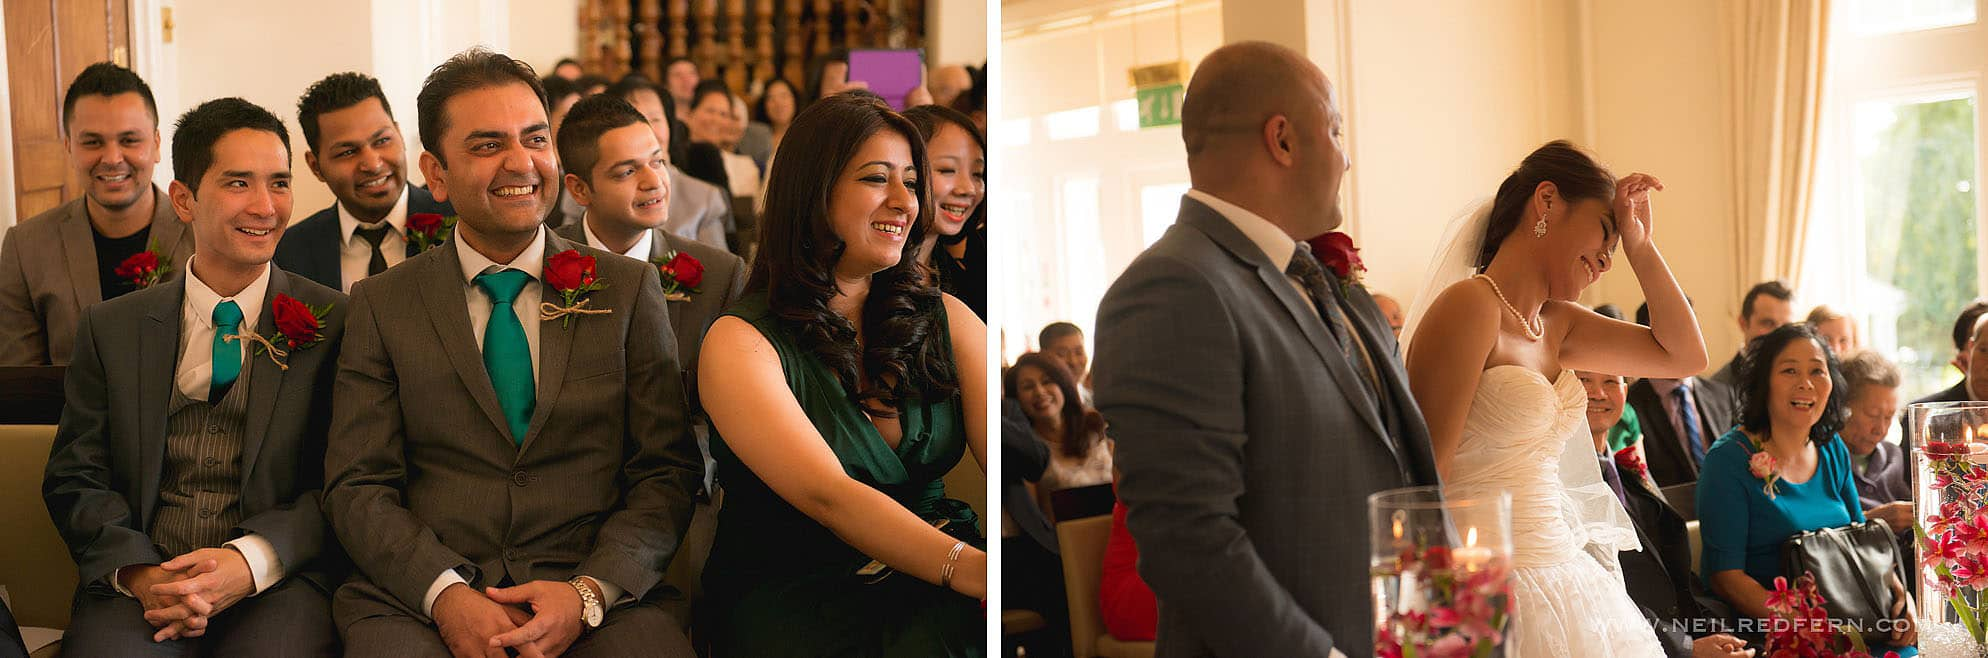 guests laughing during wedding ceremony